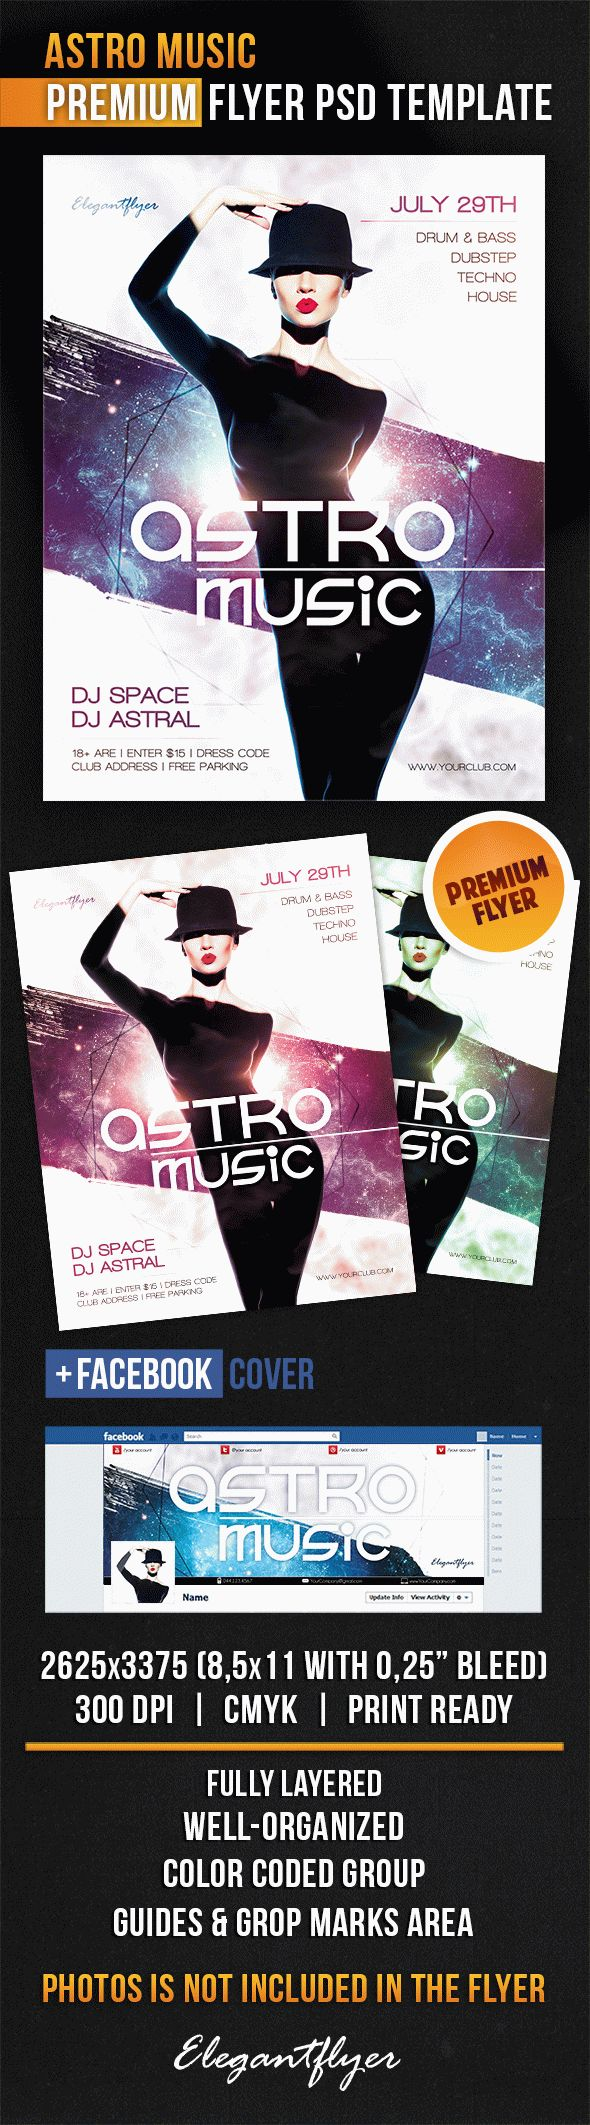 Astro Music – Flyer PSD Template + Facebook Cover